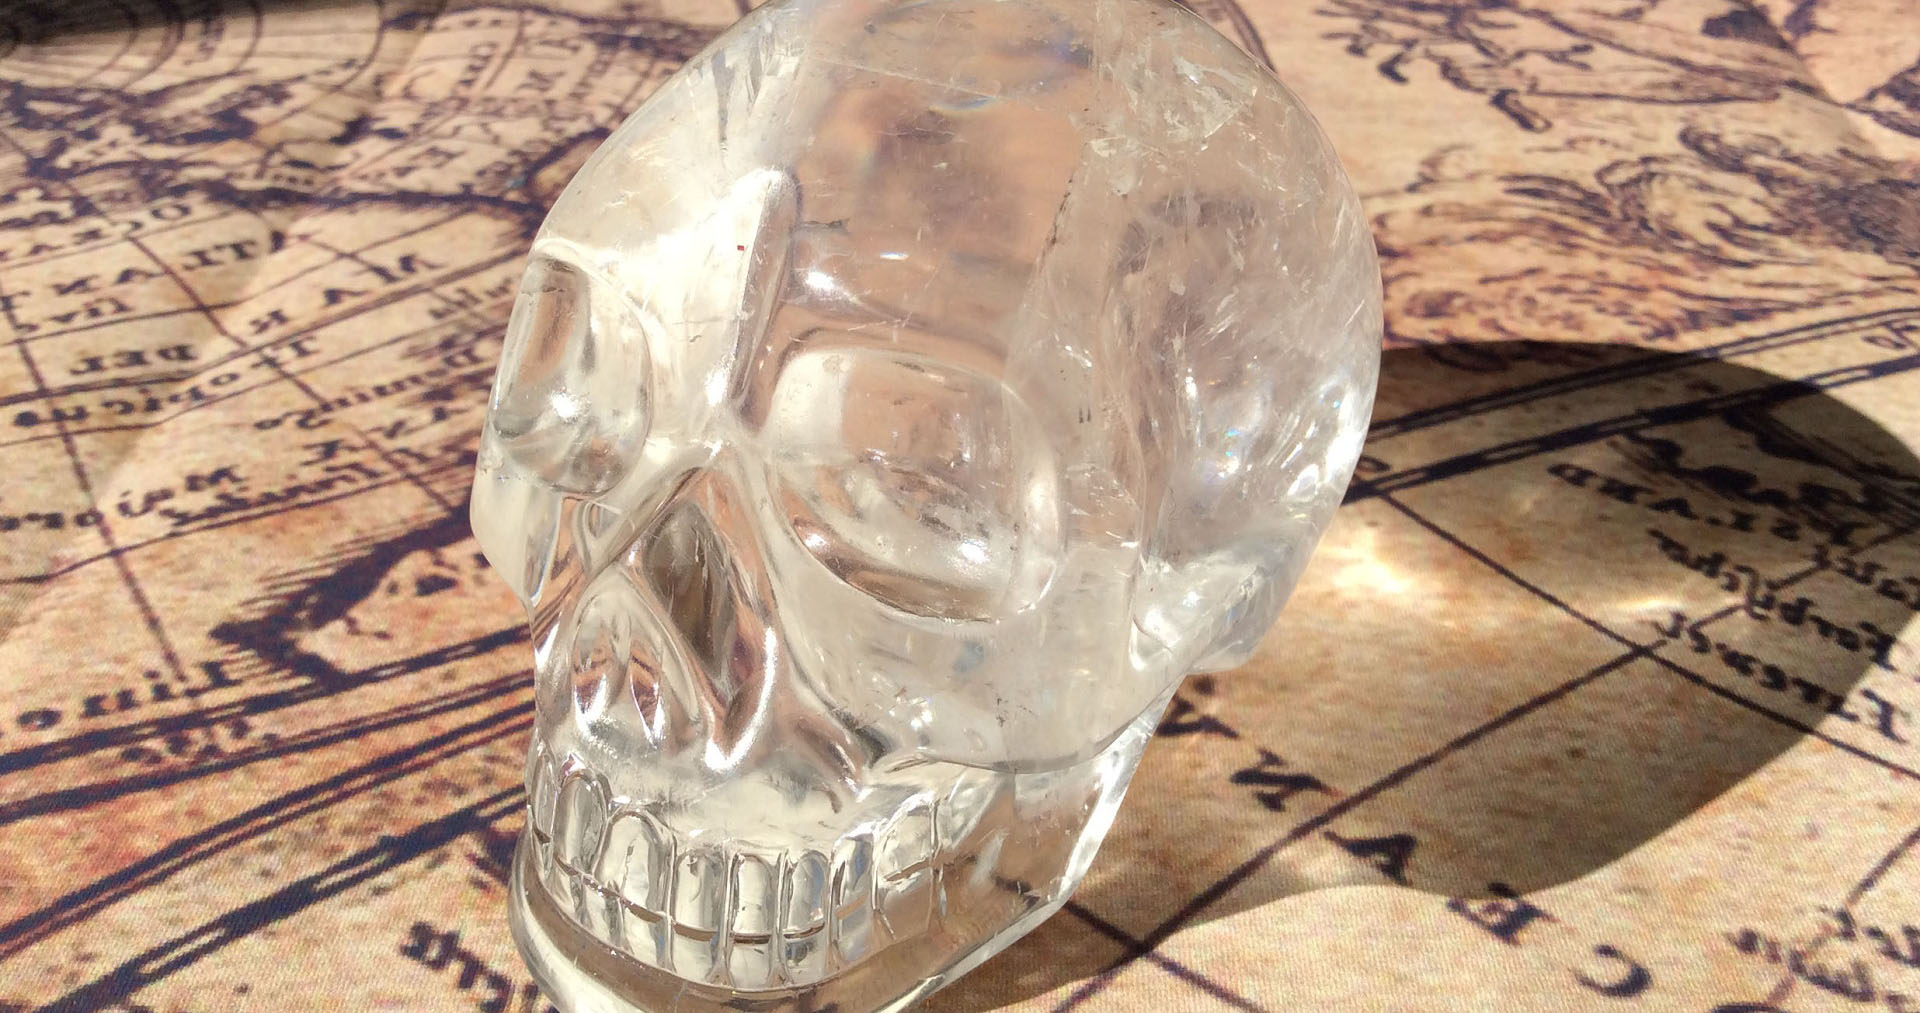 Crystal Skull How many crystal skulls have been found?